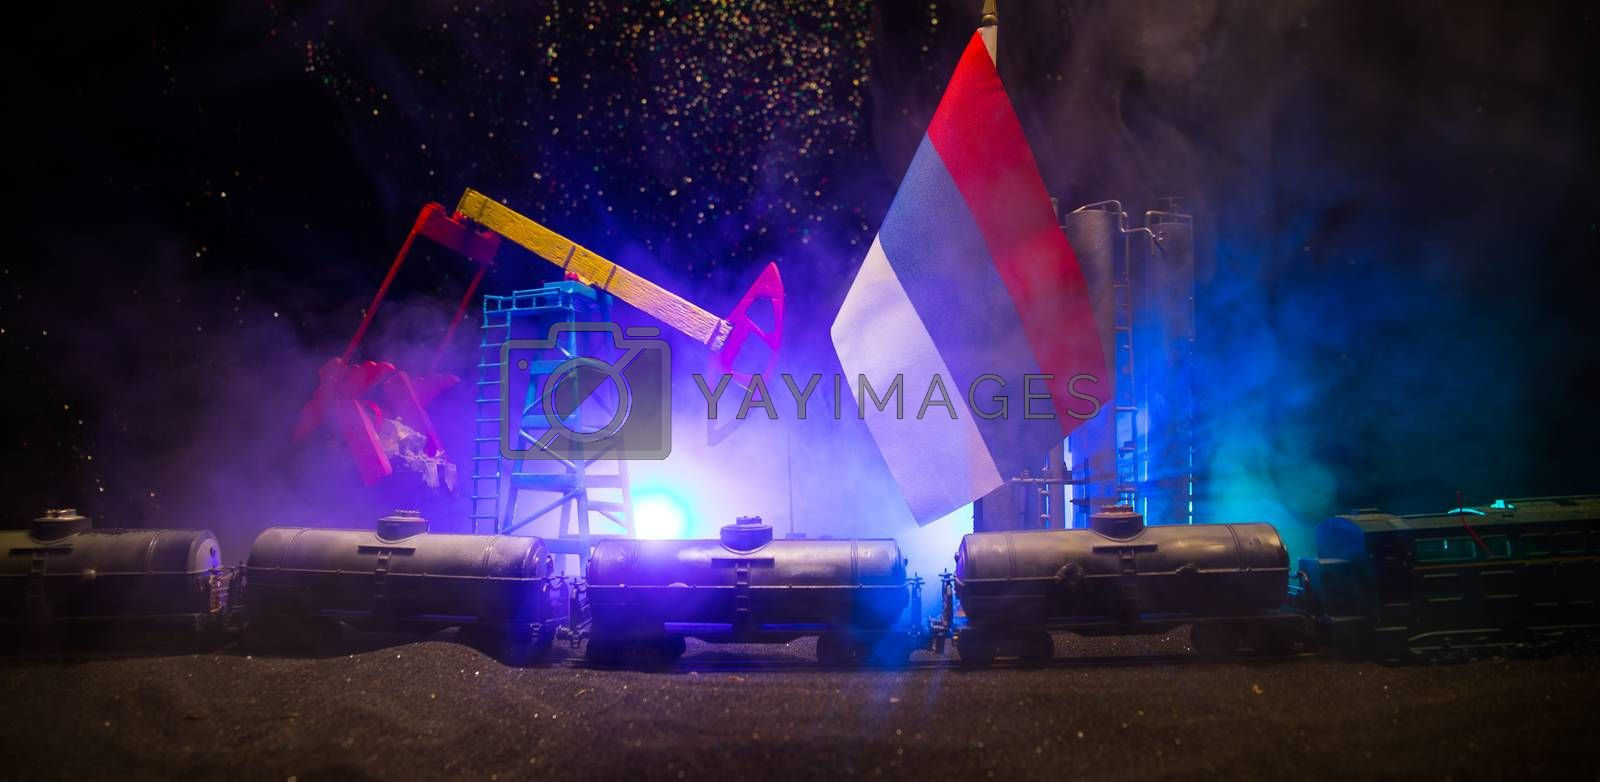 Business dialogue, oil agreement concept: National flags with Oil pump and oil refining factory at night. Night industrial railway with oil tank wagons. Selective focus. Artwork decoration.